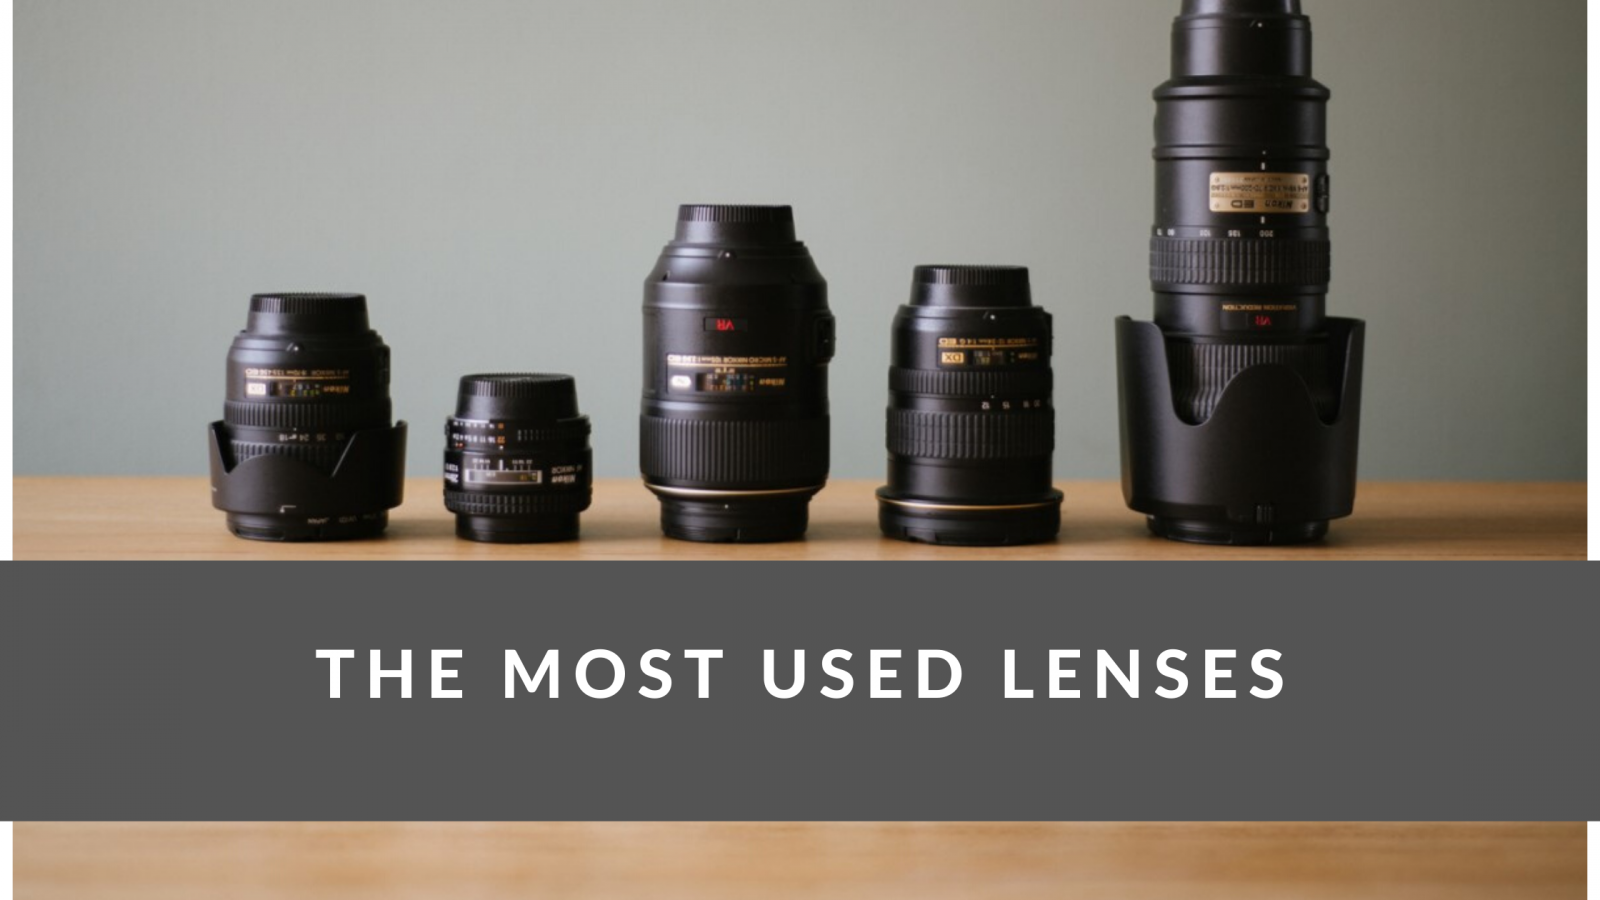 The Most Used Lenses